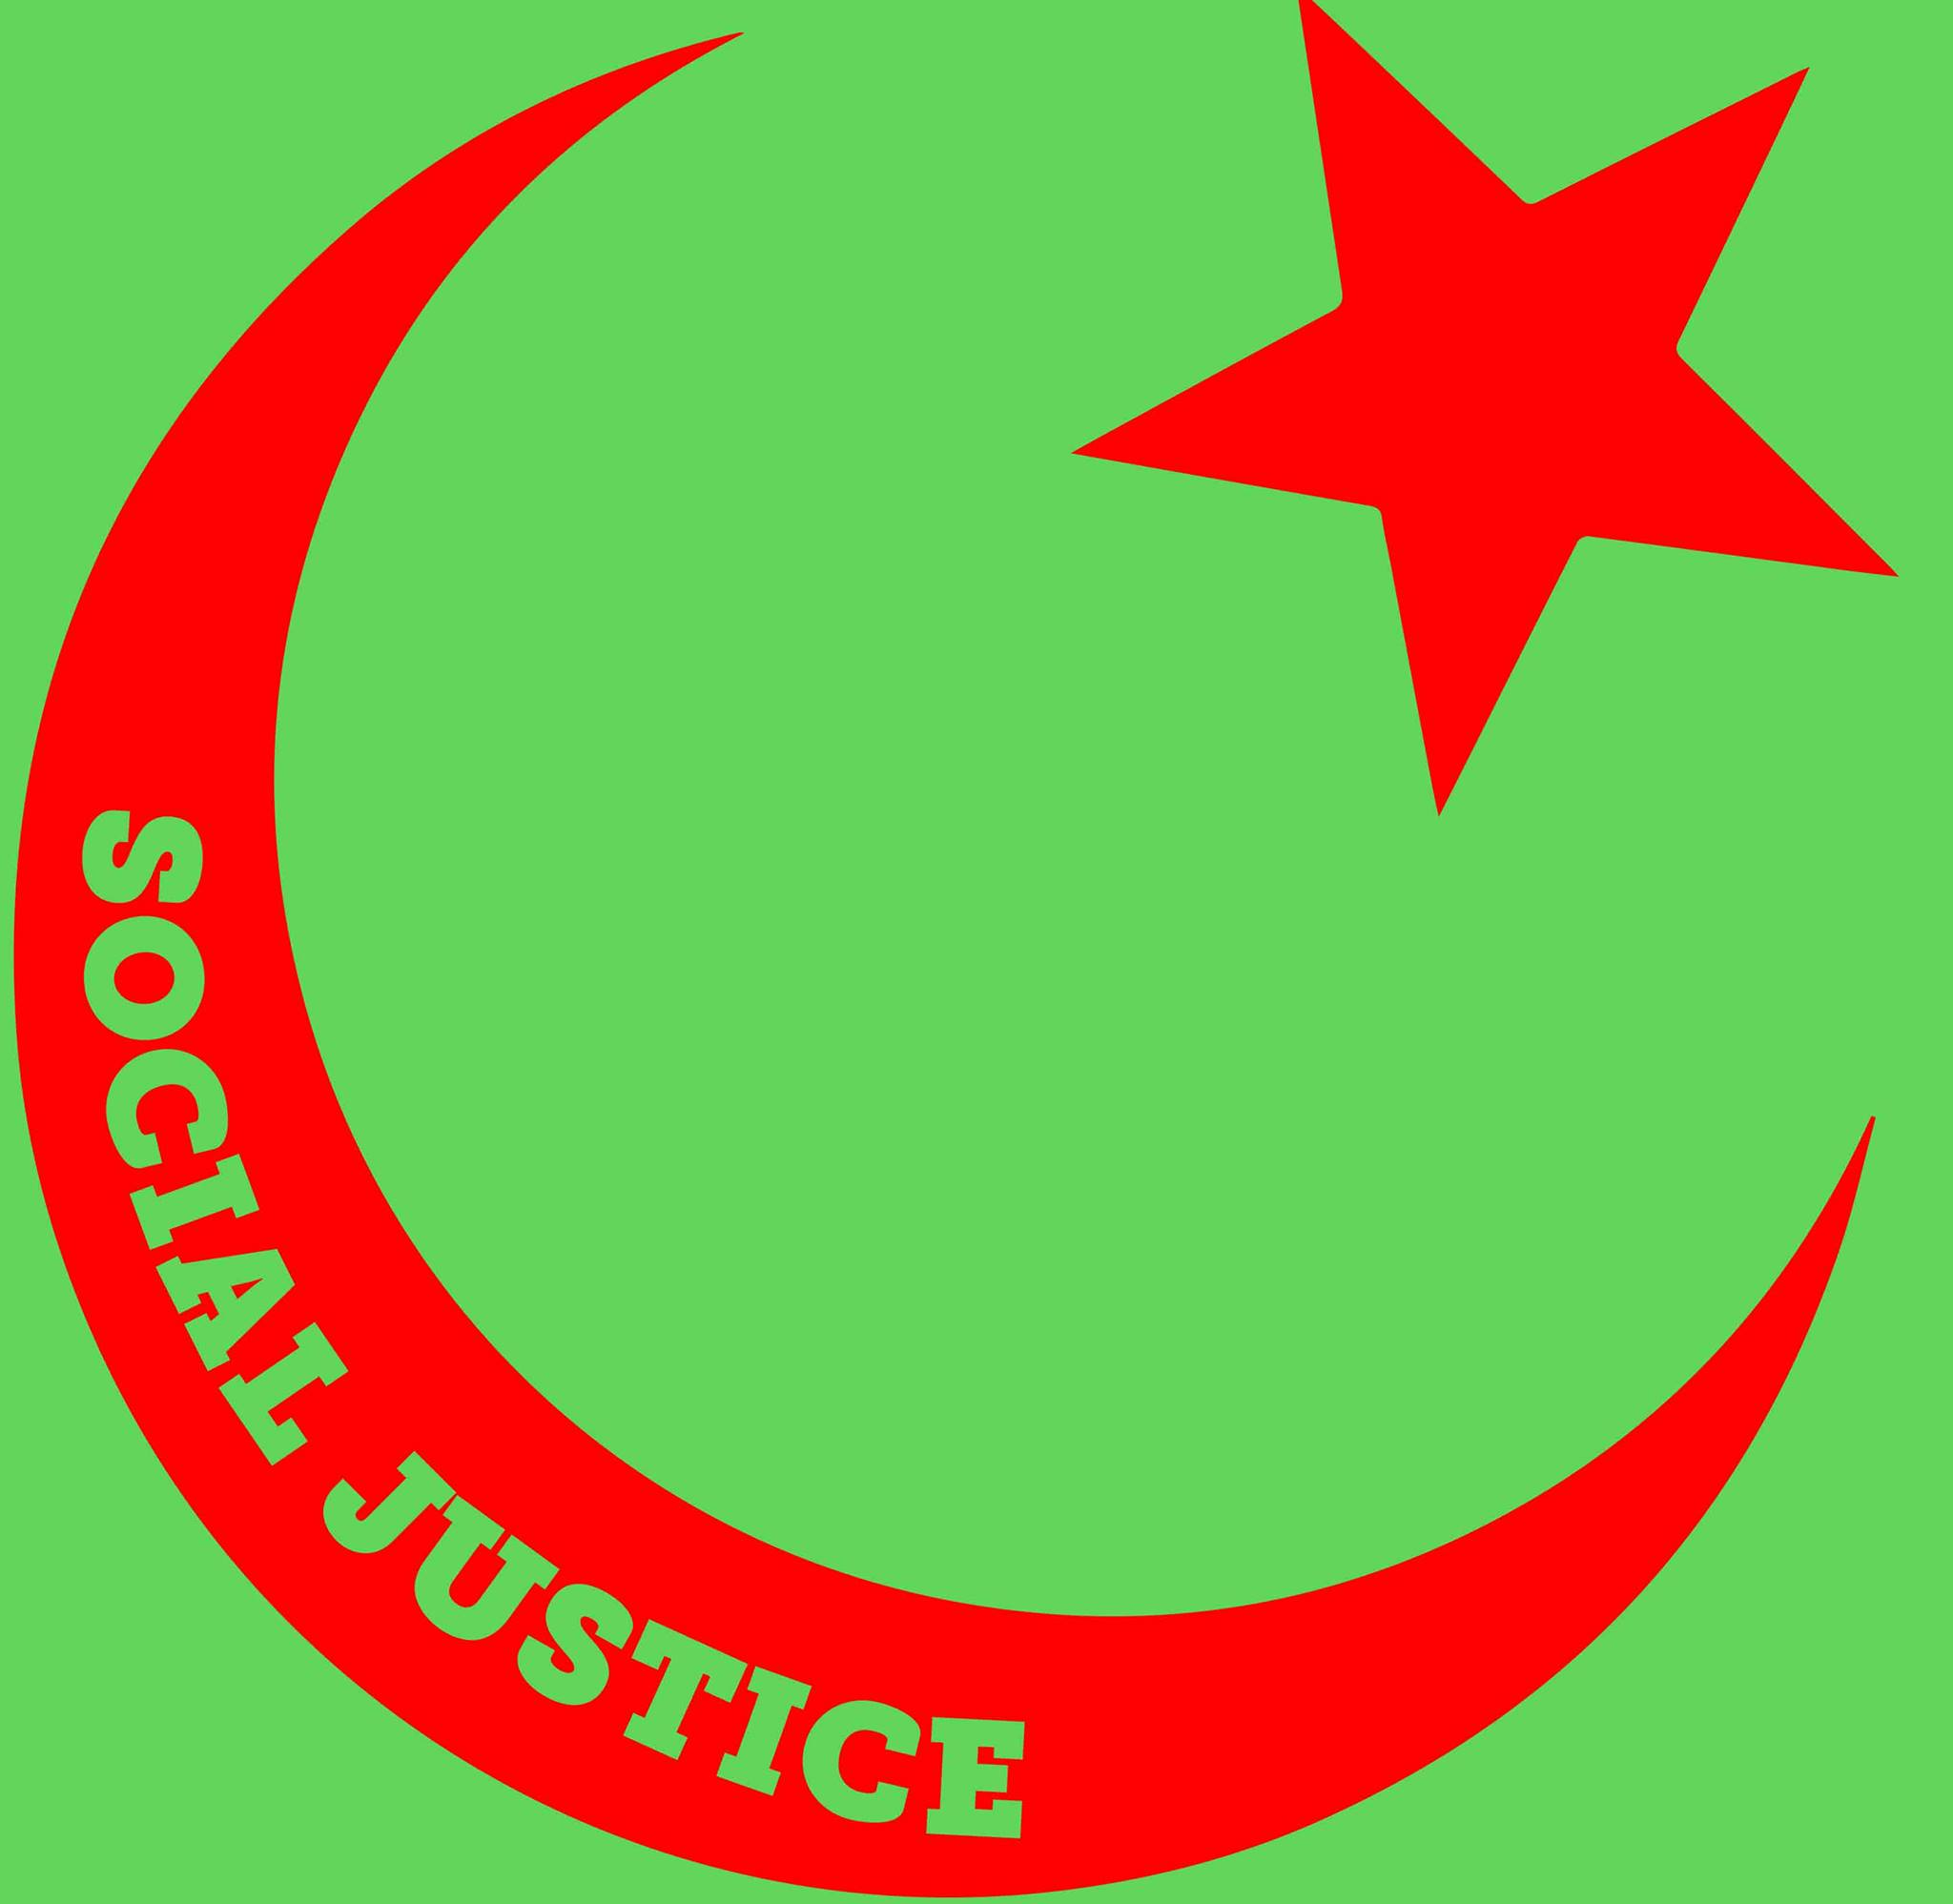 Muslims for Social Justice    Muslims for Social Justice is a NC-based group dedicated to upholding social justice and human rights for all. Our vision is to work closely on anti-colonial, anti-Islamophobia, Black Liberation movements, international issues and progressive social movements and seek to connect these across borders. MSJ prioritizes fighting racism, white supremacy and sexism within as well as beyond the Muslim community.